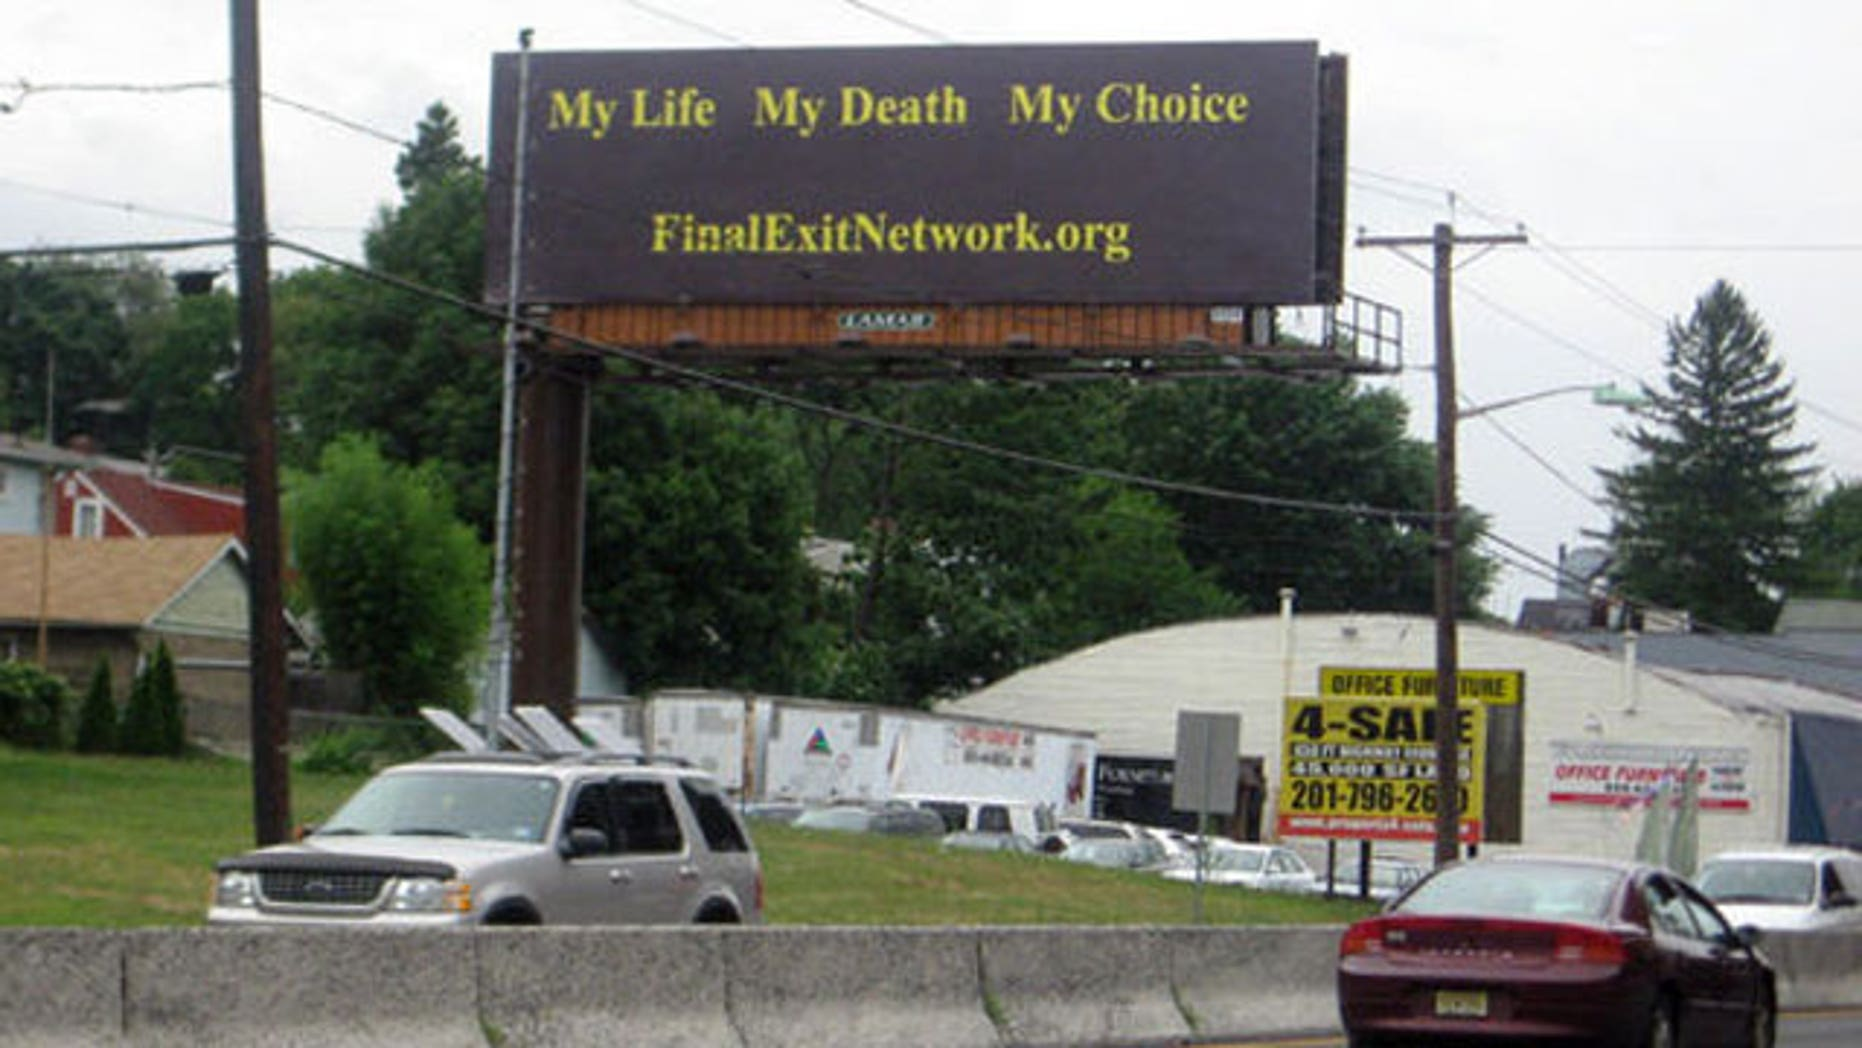 Photo/Al Jones 1010Wins-Billboard located on rt 22 in Hillside, NJ